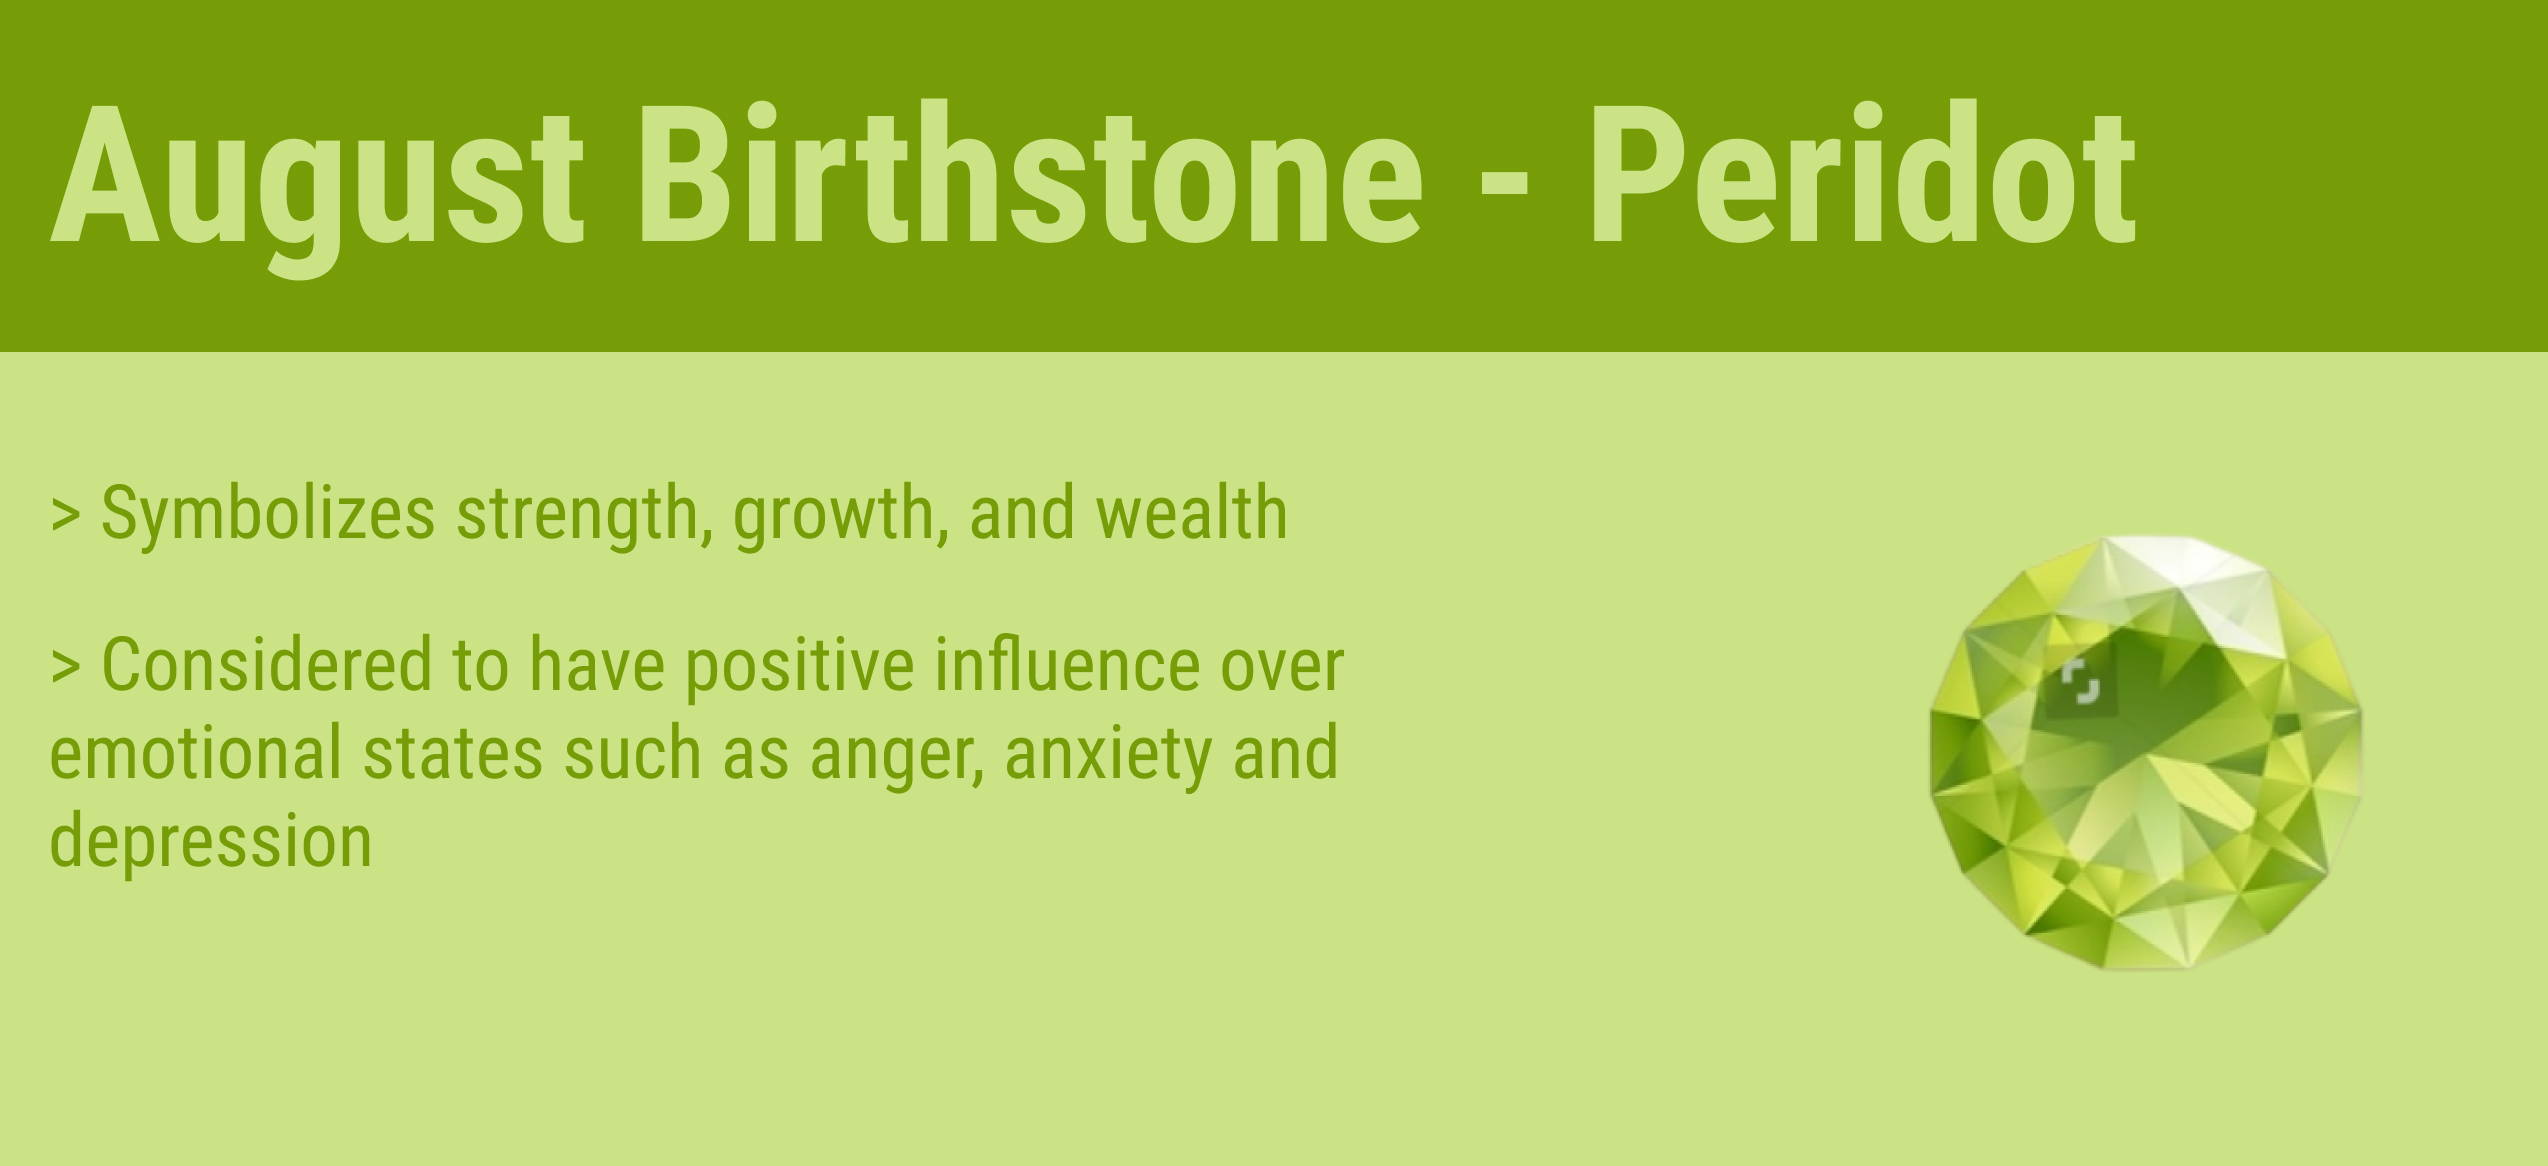 august birthstone quick facts